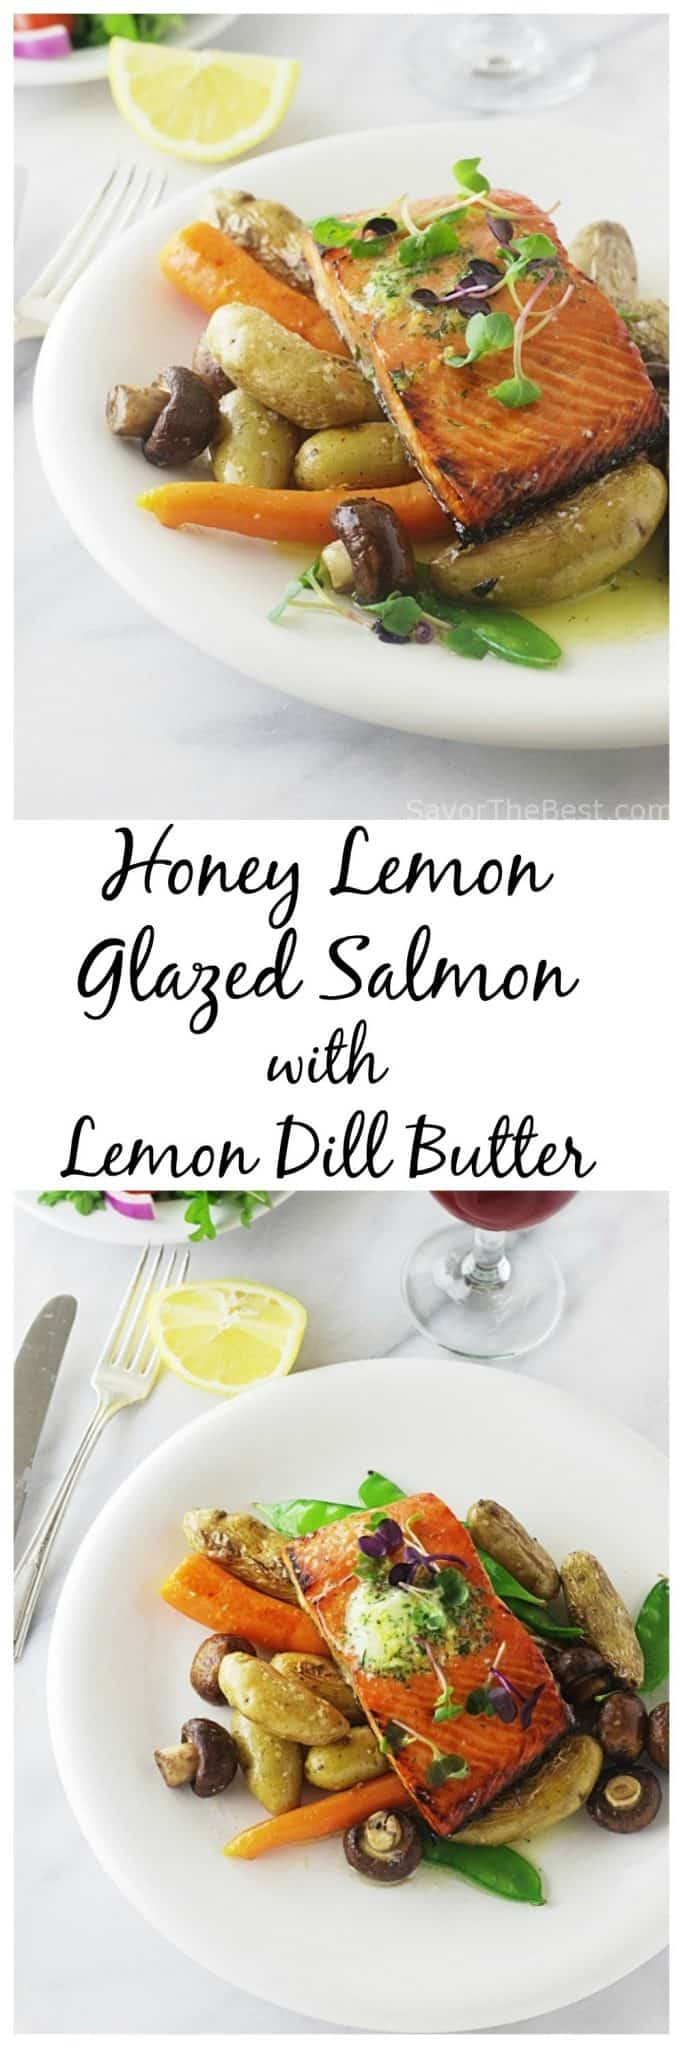 Honey lemon glazed salmon with lemon dill butter